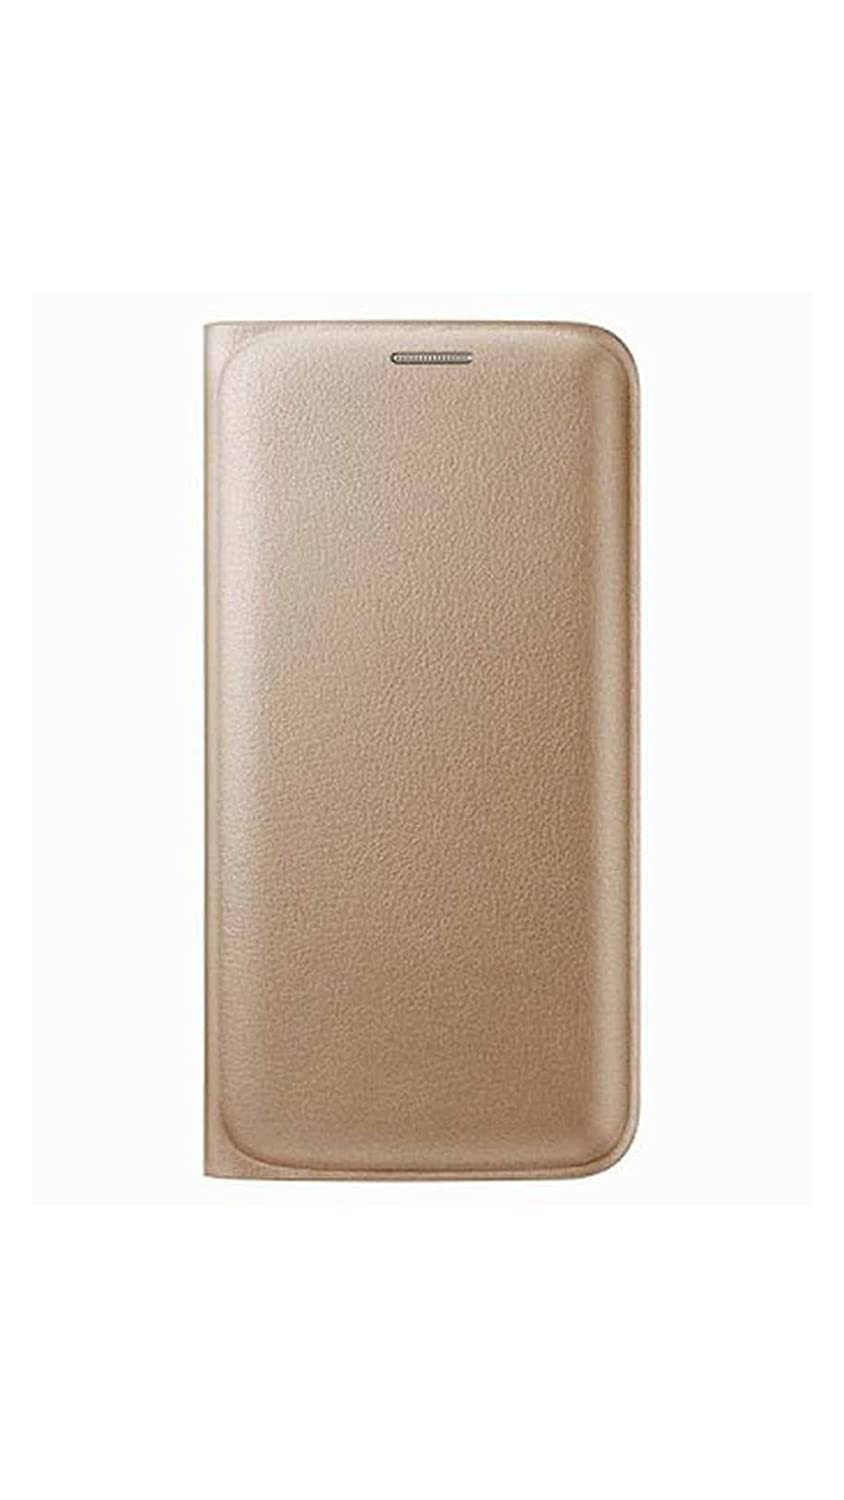 on sale 143e8 d0e36 Buy Samsung Galaxy Grand 2 I7106 Original Leather FLIP Cover (Gold ...